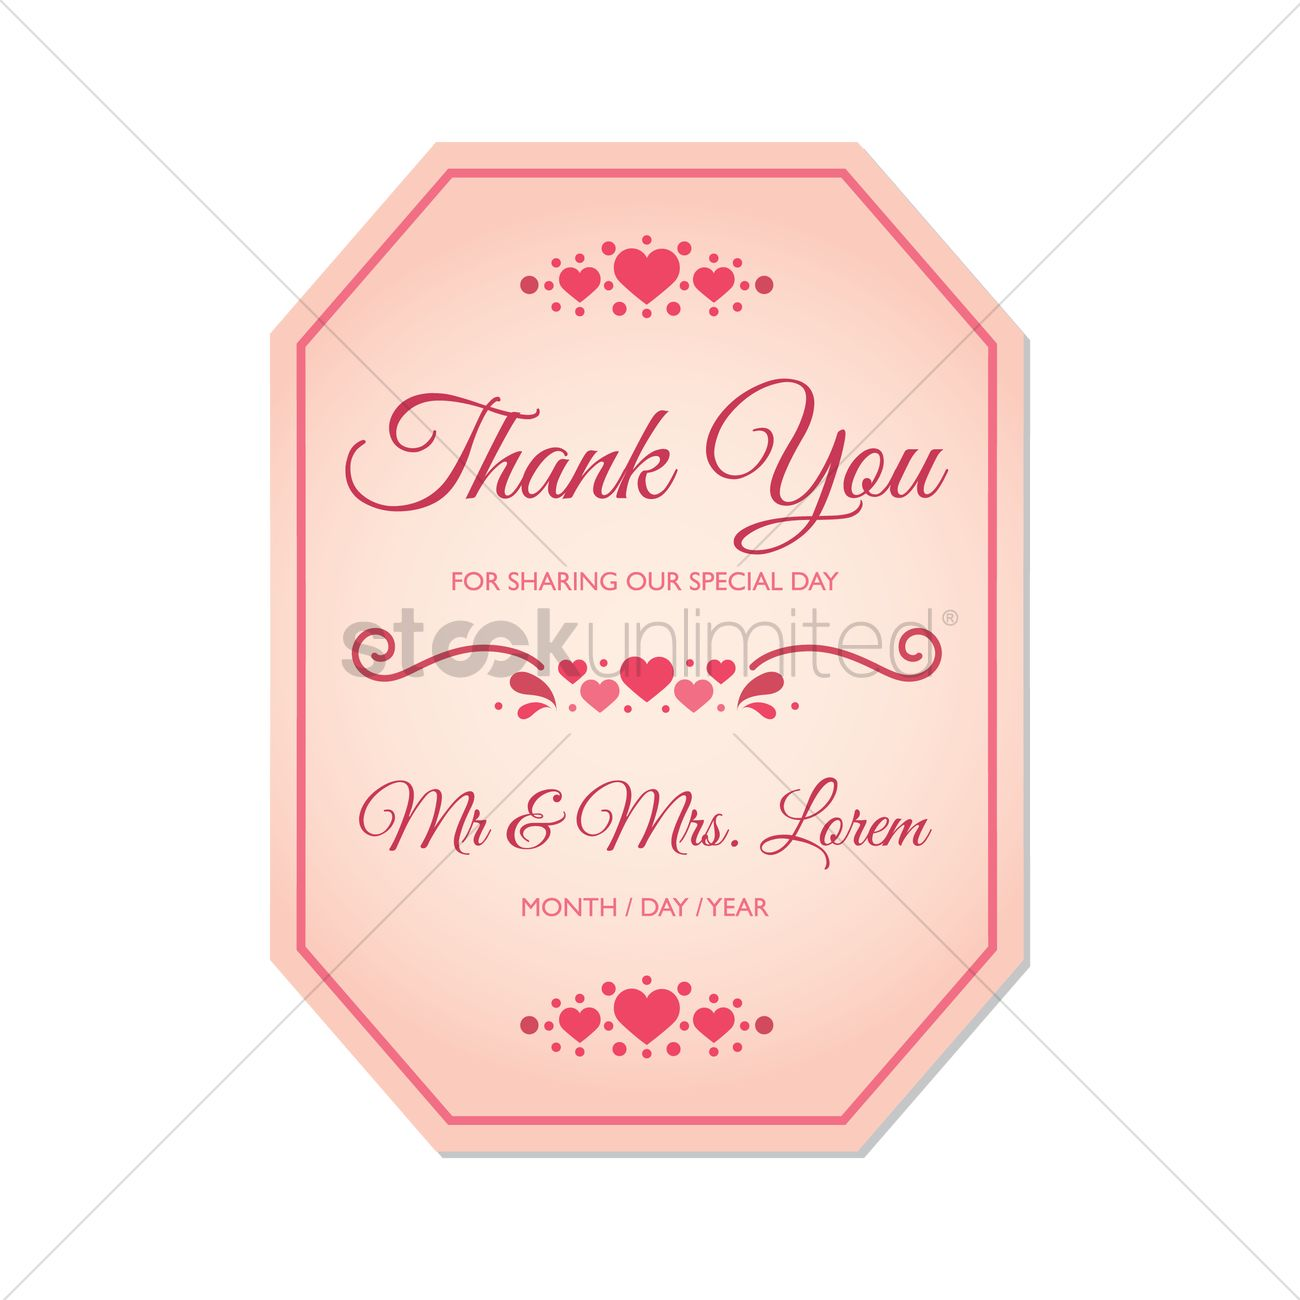 Wedding thank you card Vector Image - 1798101 | StockUnlimited